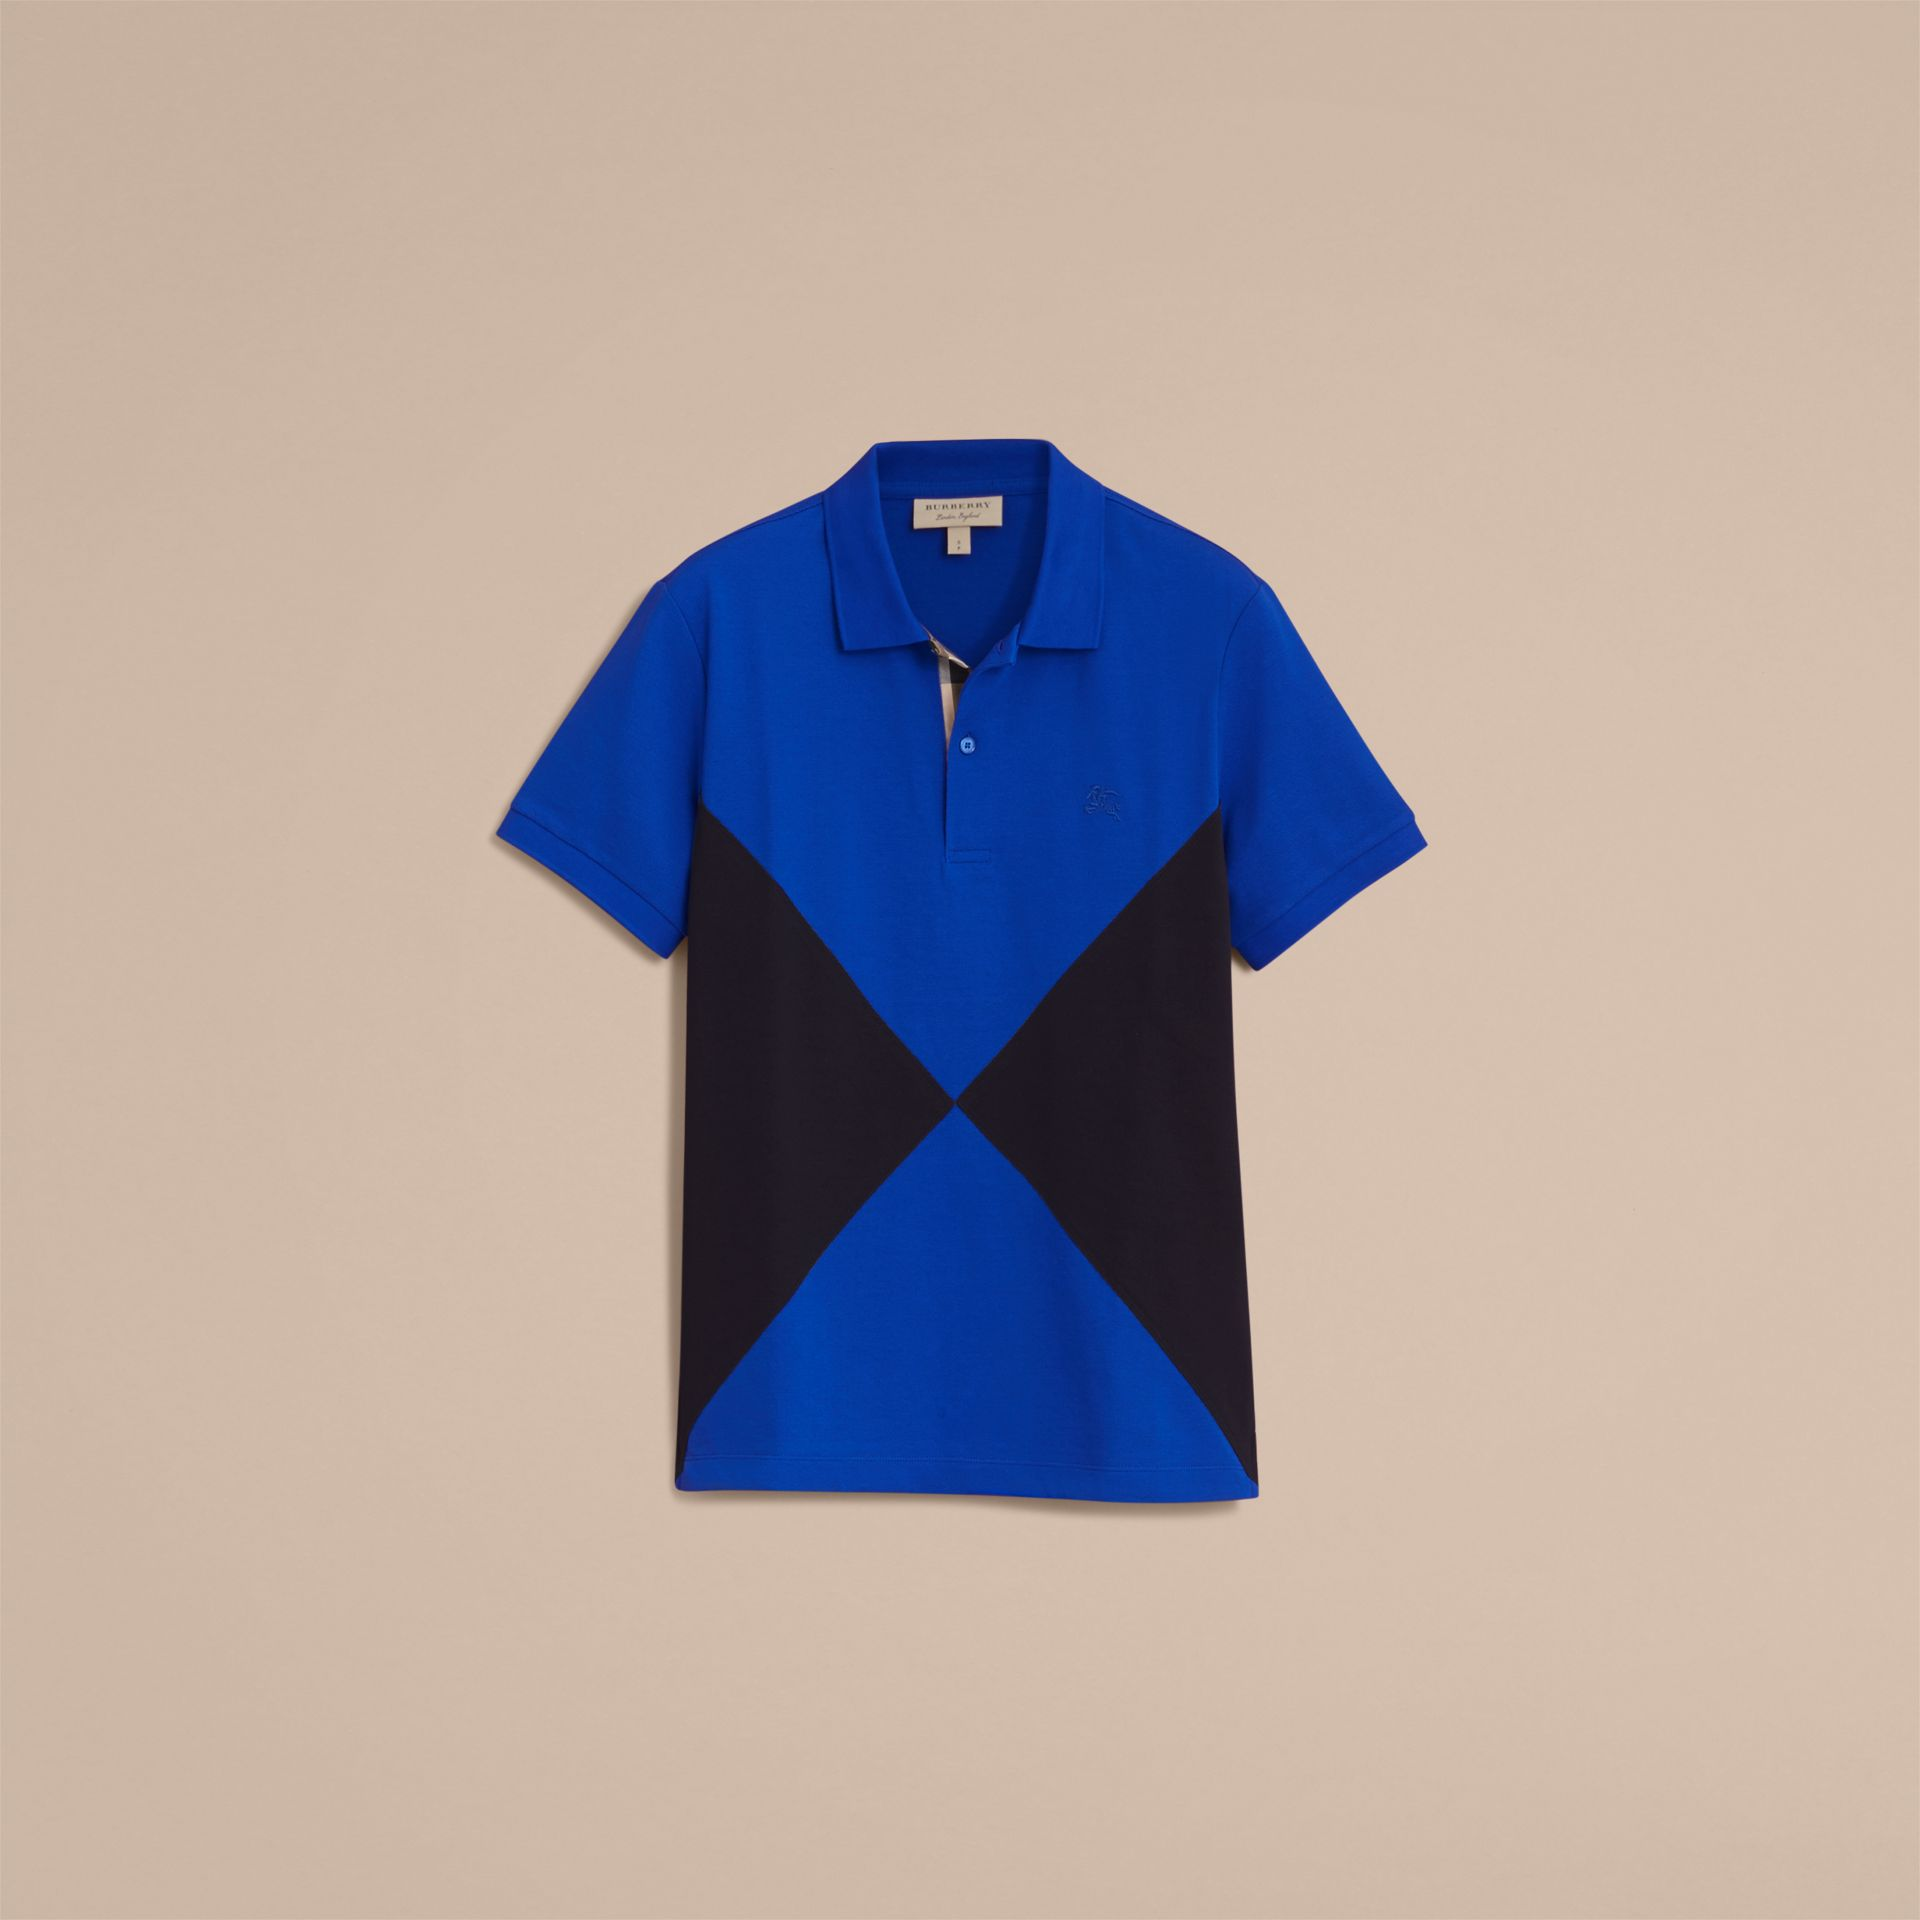 Geometric Motif Cotton Piqué Polo Shirt with Check Placket in Cobalt Blue - gallery image 4